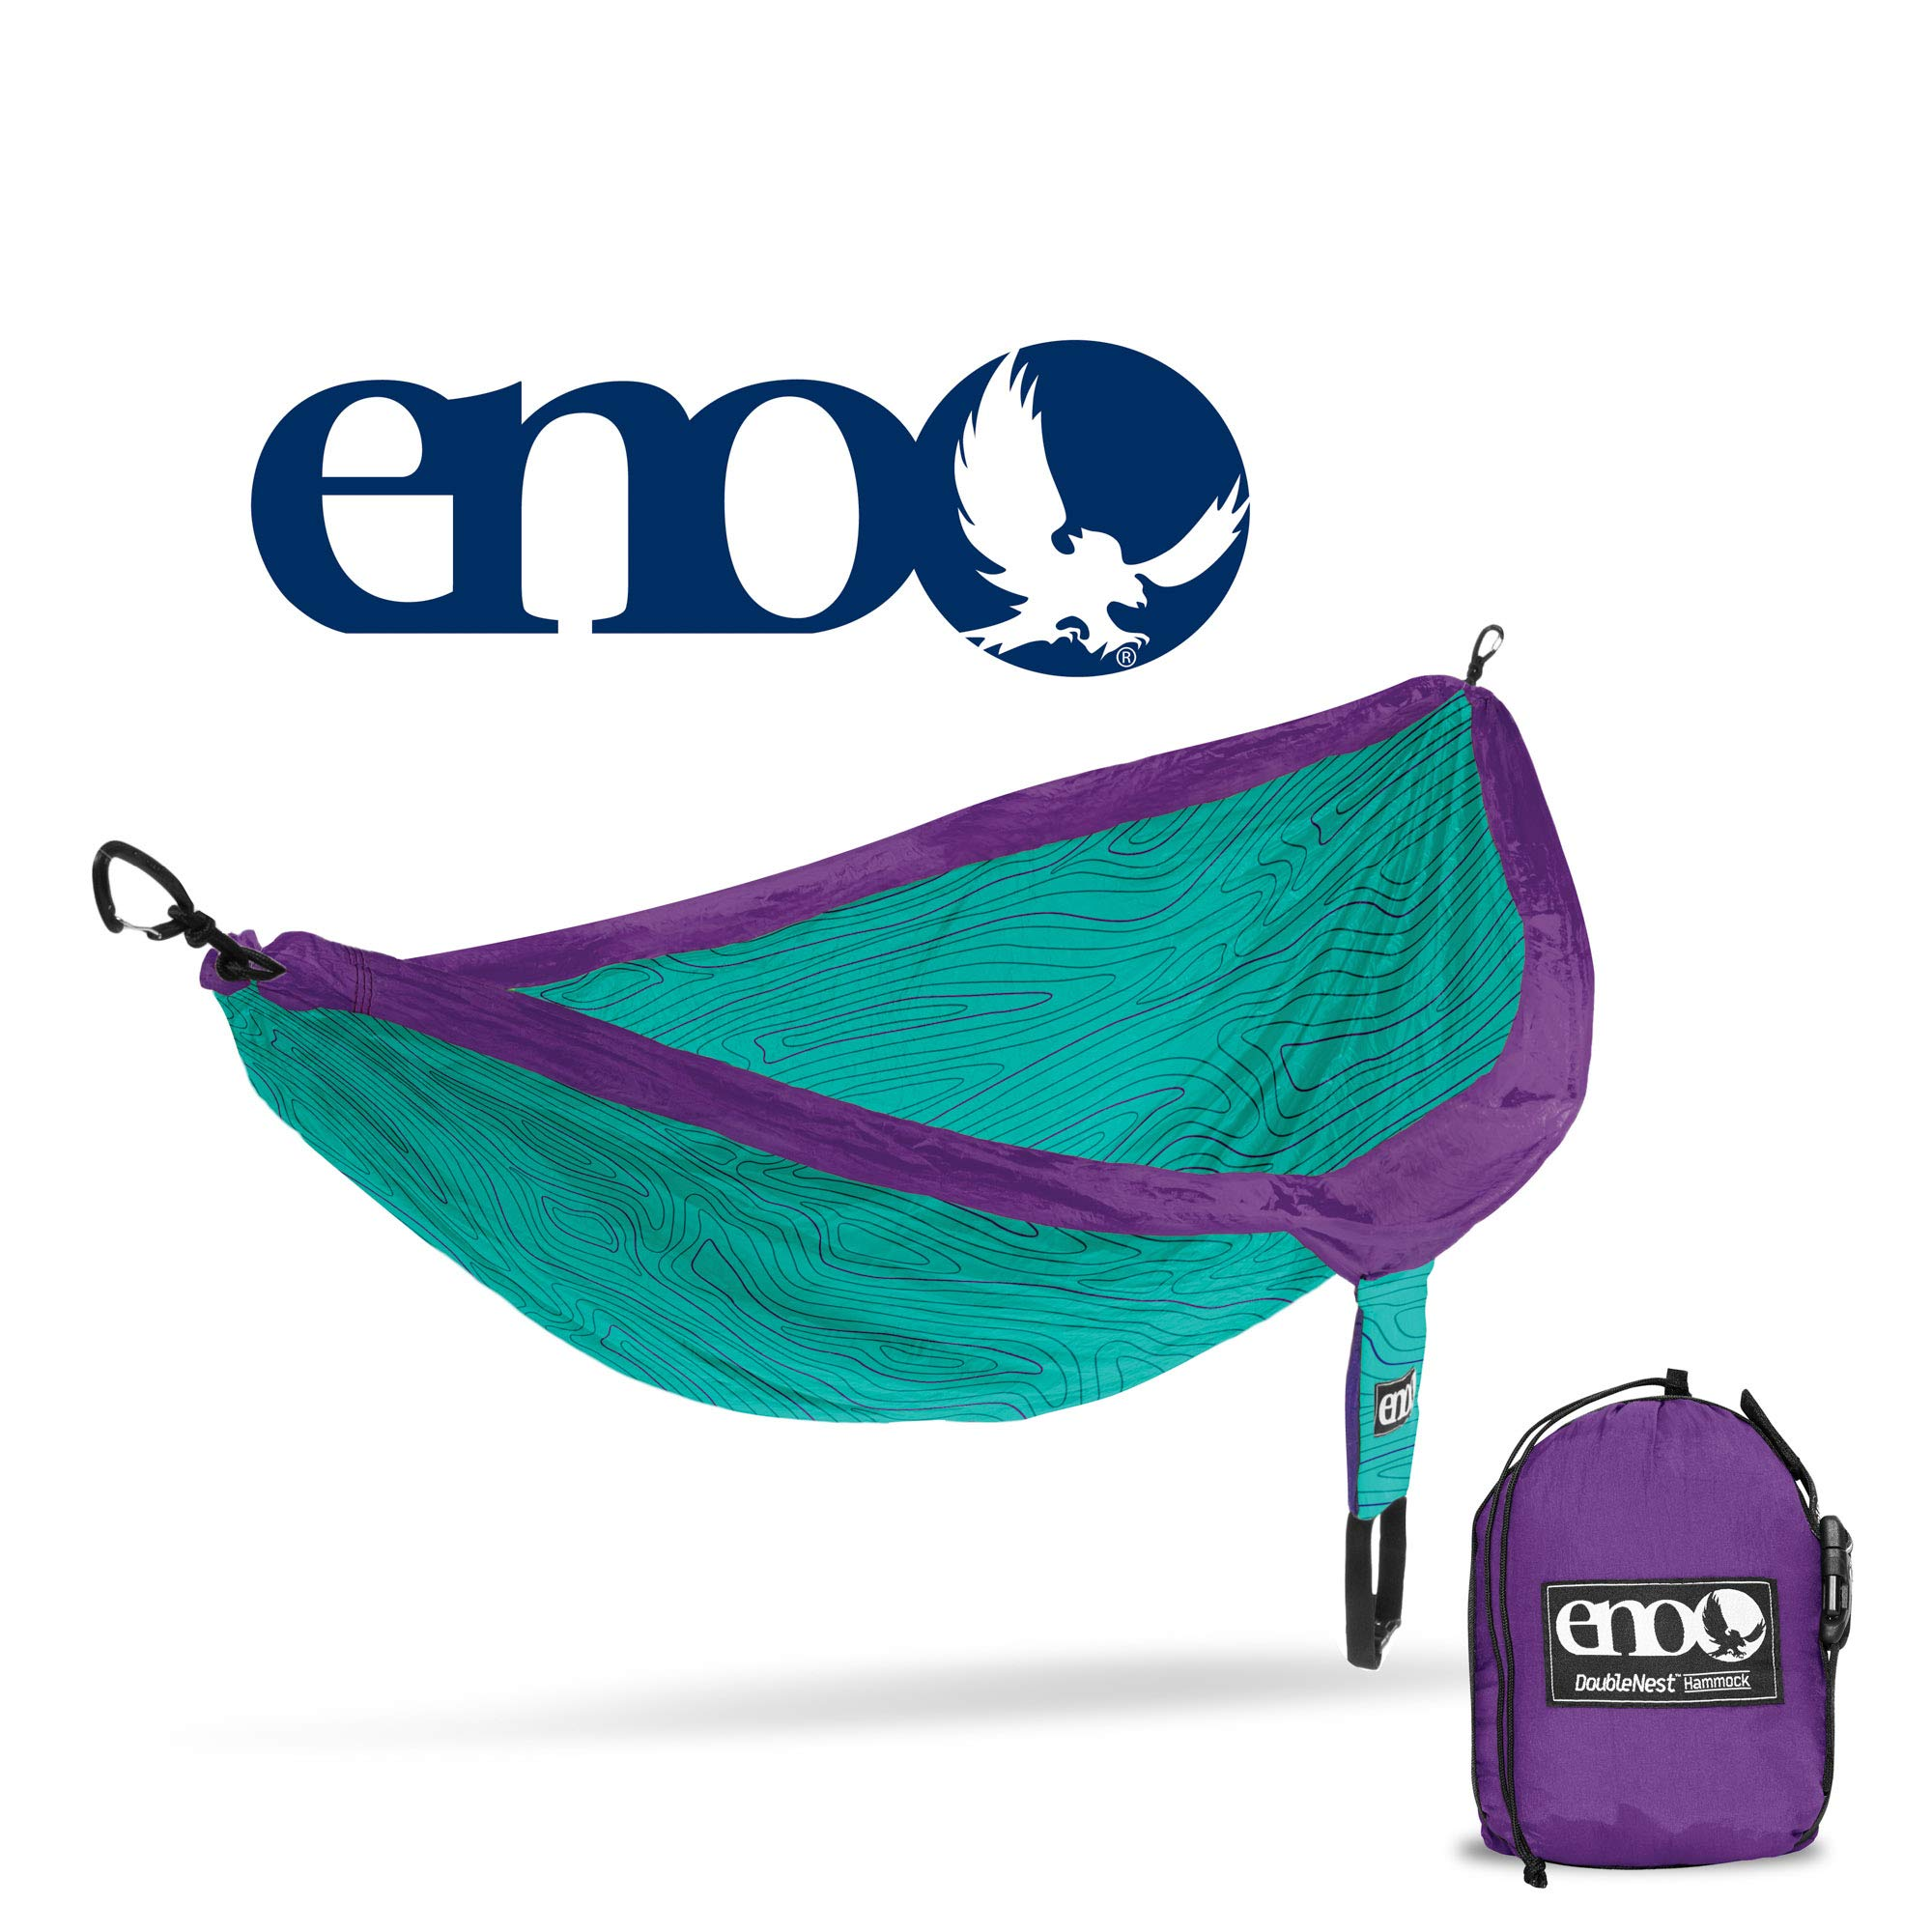 ENO - Eagles Nest Outfitters DoubleNest Print, Portable Hammock for Two, Woodgrain/Cyan